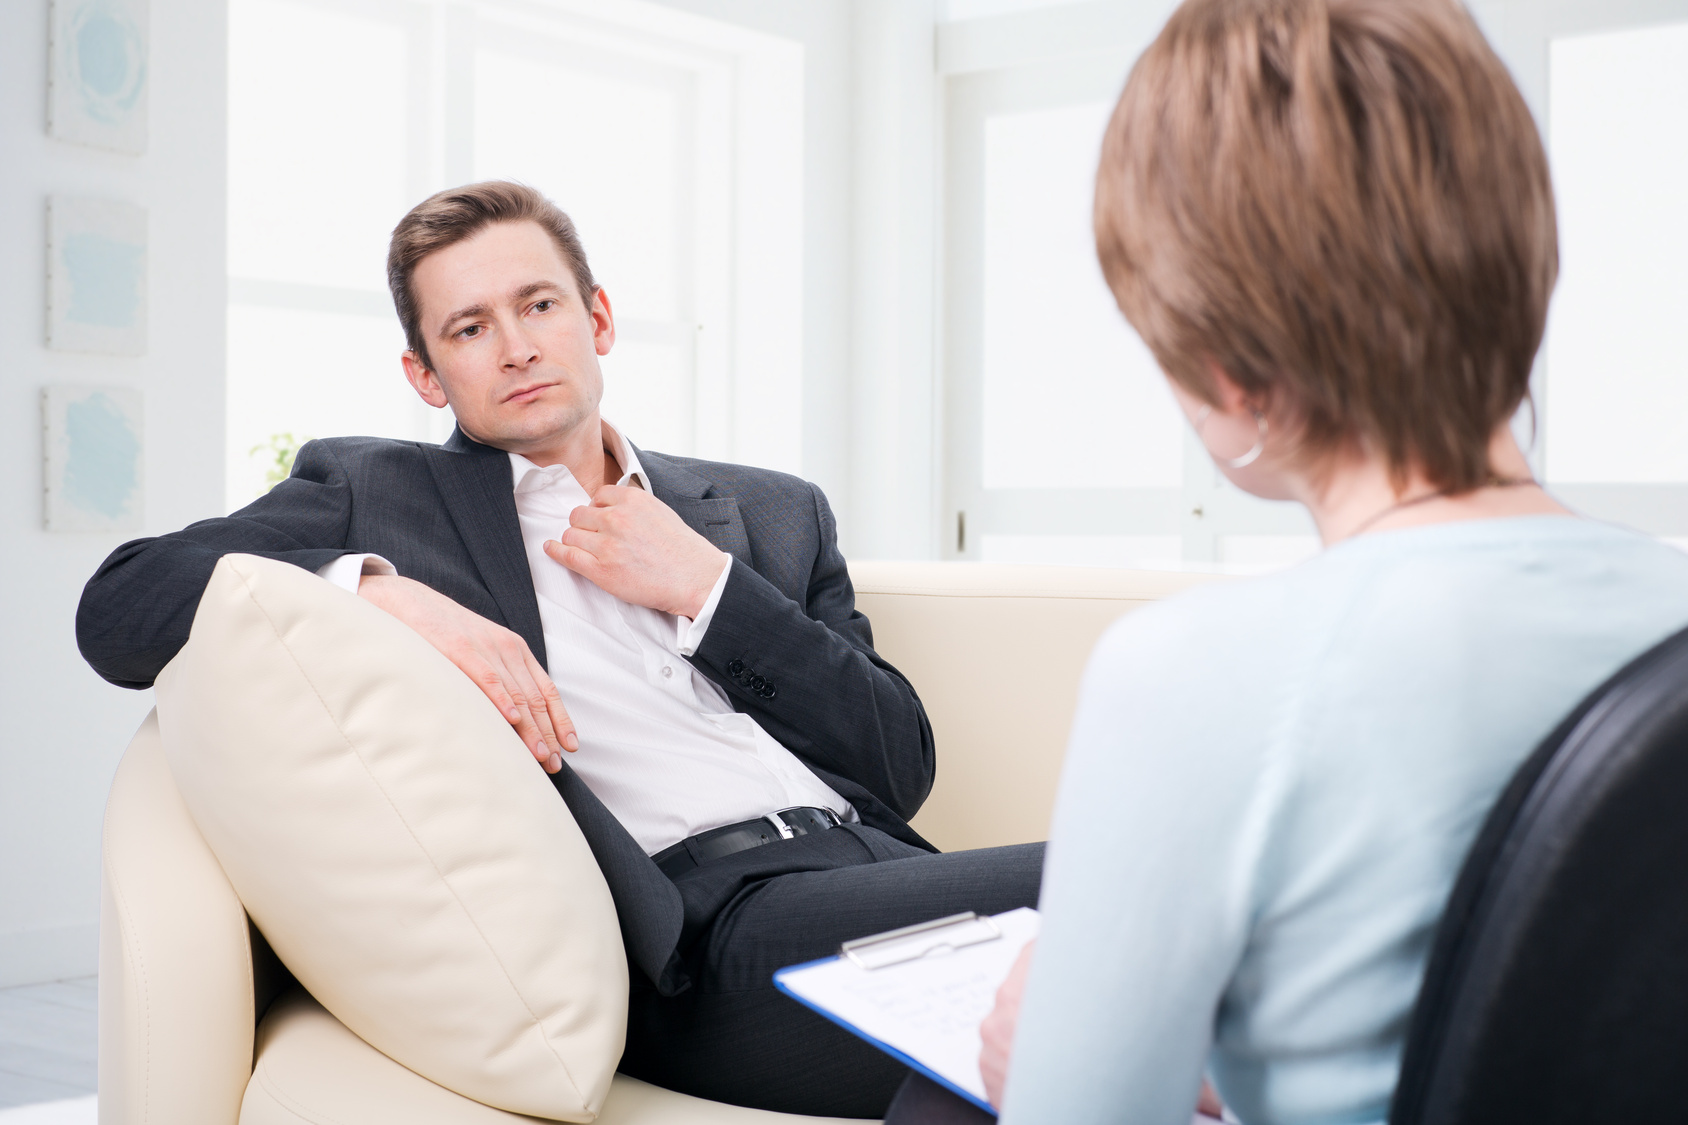 depressed talking with psychologist